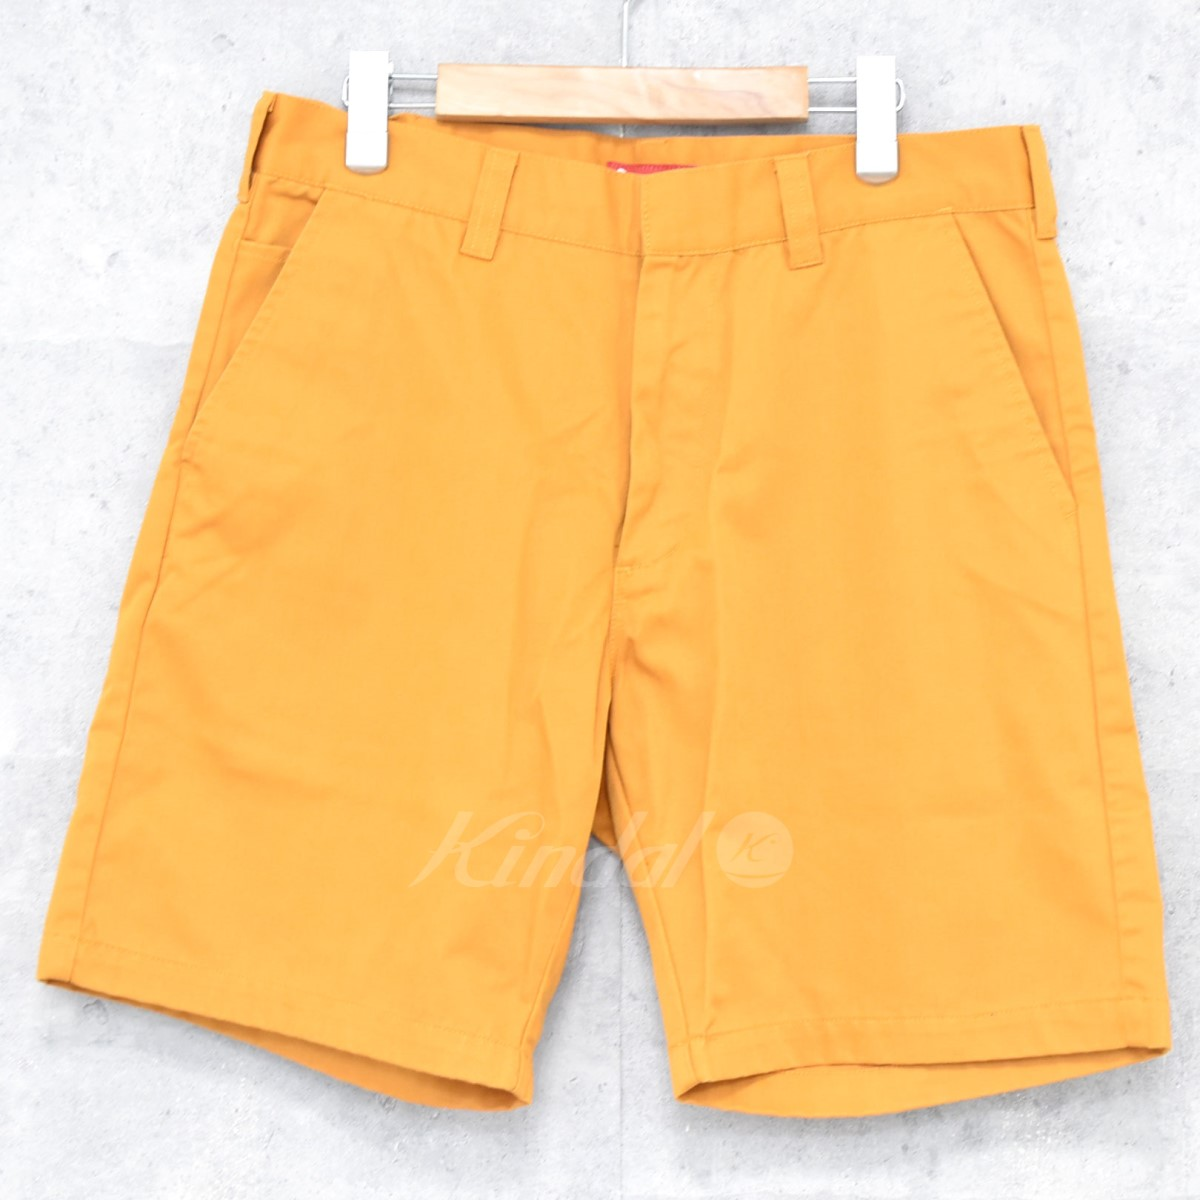 【中古】SUPREME 20187S/S Work Short パンツ 【送料無料】 【253881】 【KIND1550】